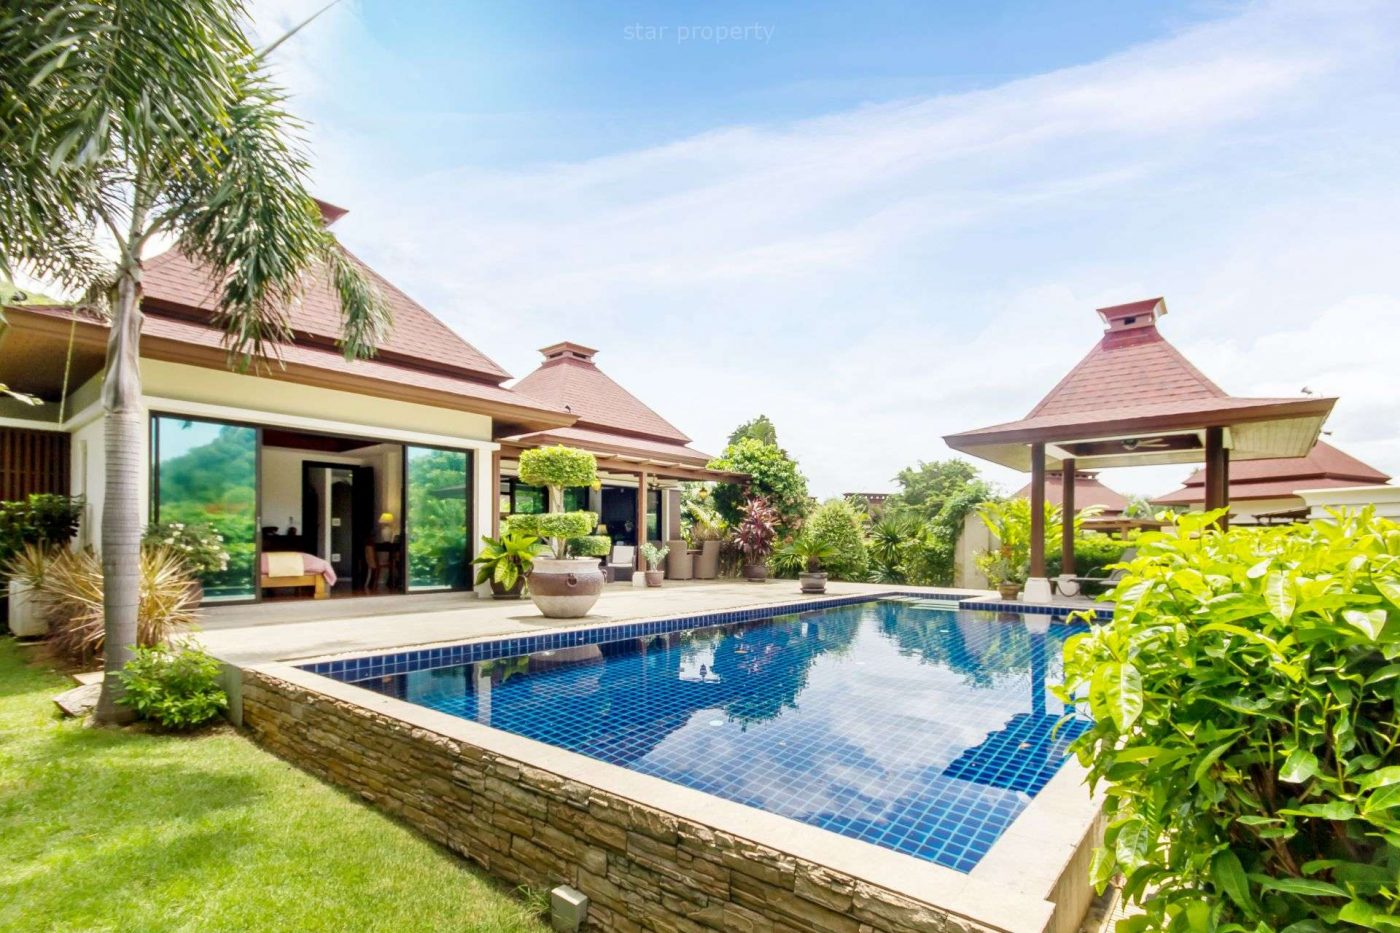 Luxury 2 Bedroom Pool Villa for Sale at The Panorama at Hua Hin District, Prachuap Khiri Khan, Thailand